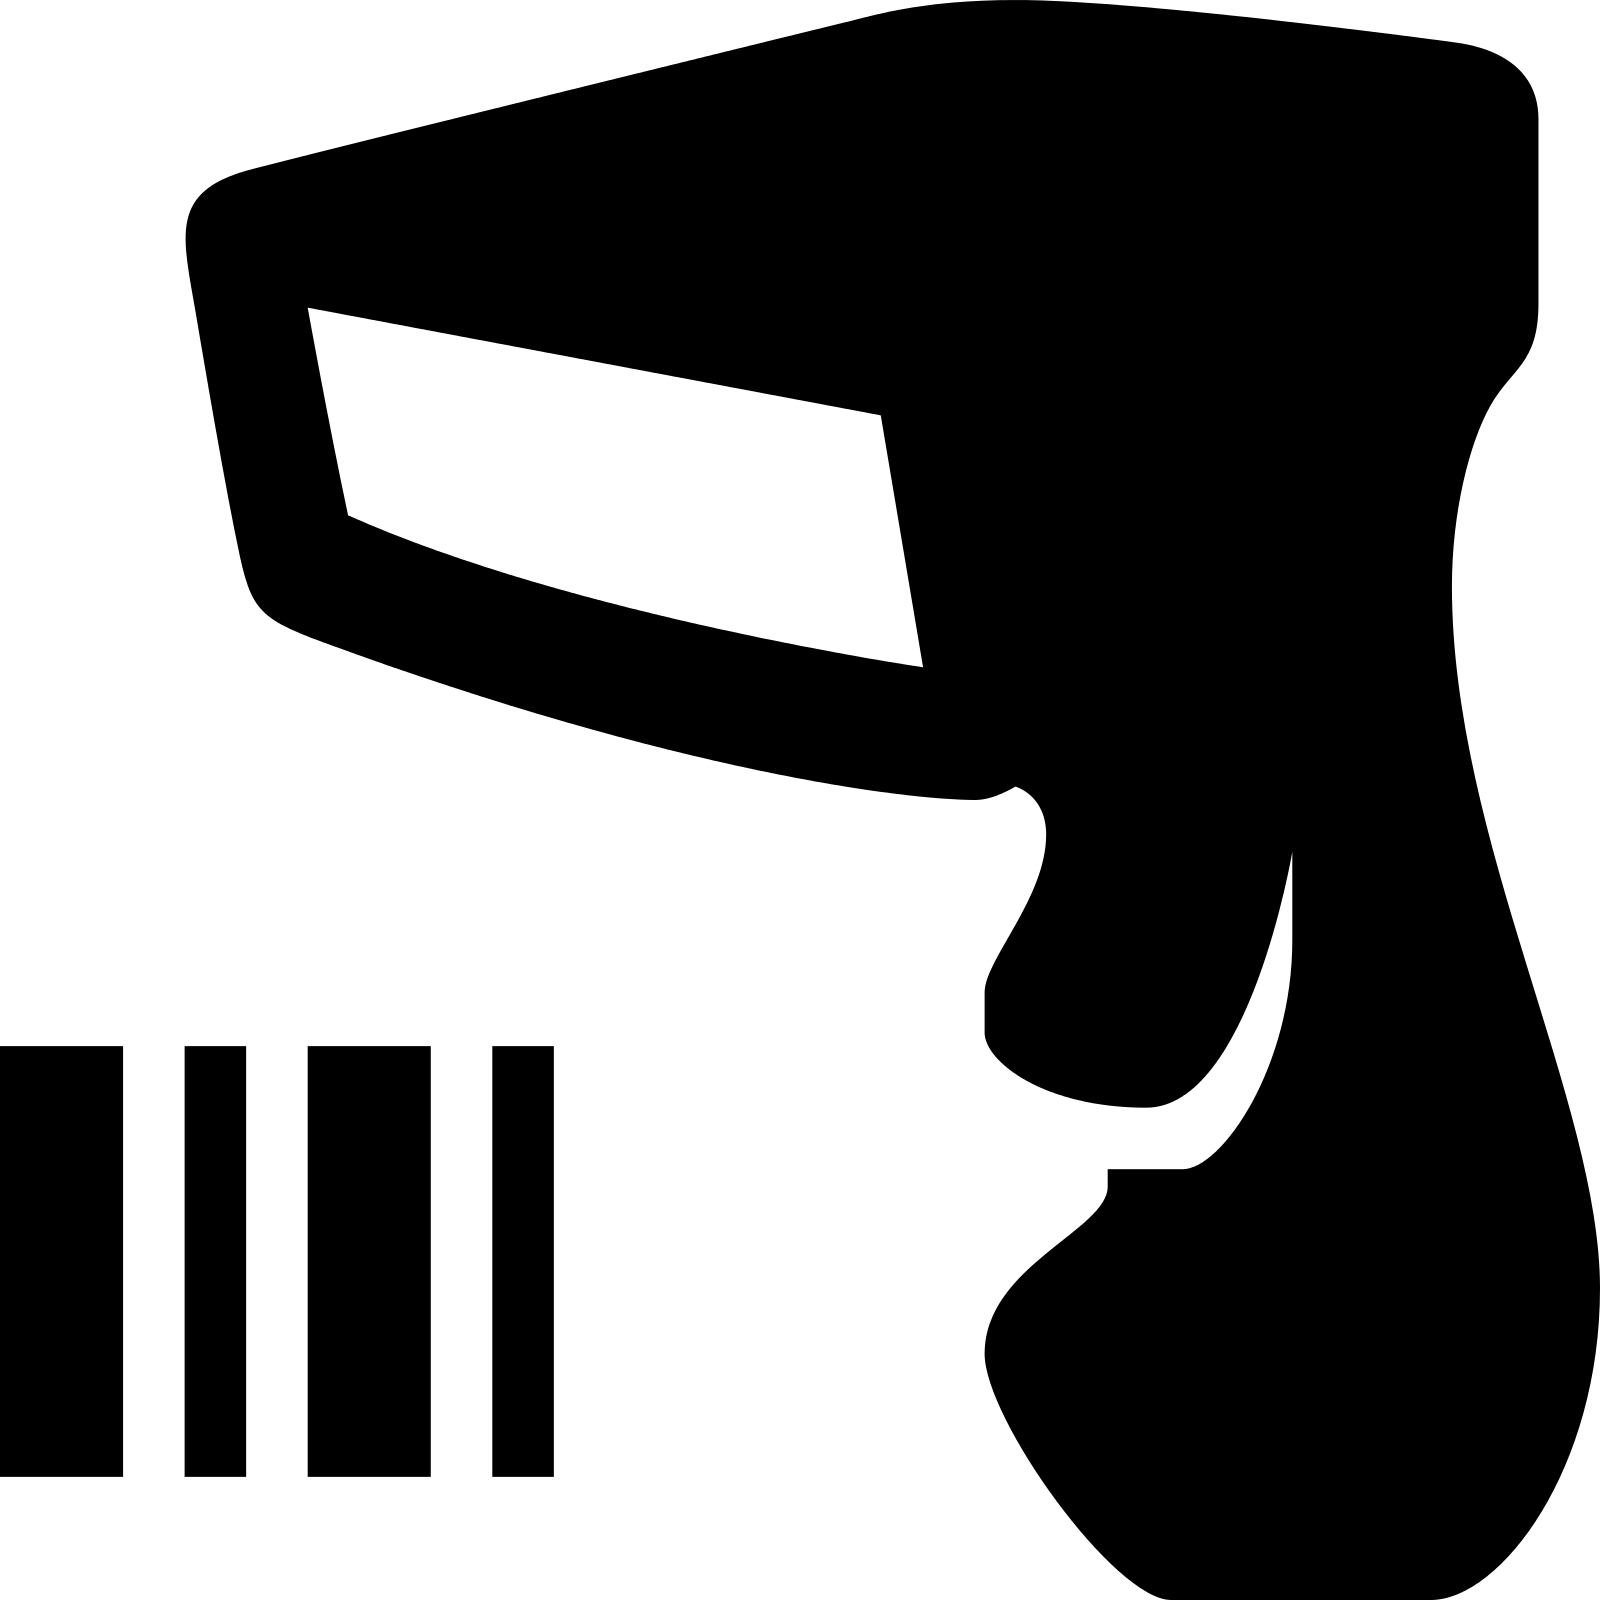 Barcode clipart barcode reader Free icon Barcode Download Barcode